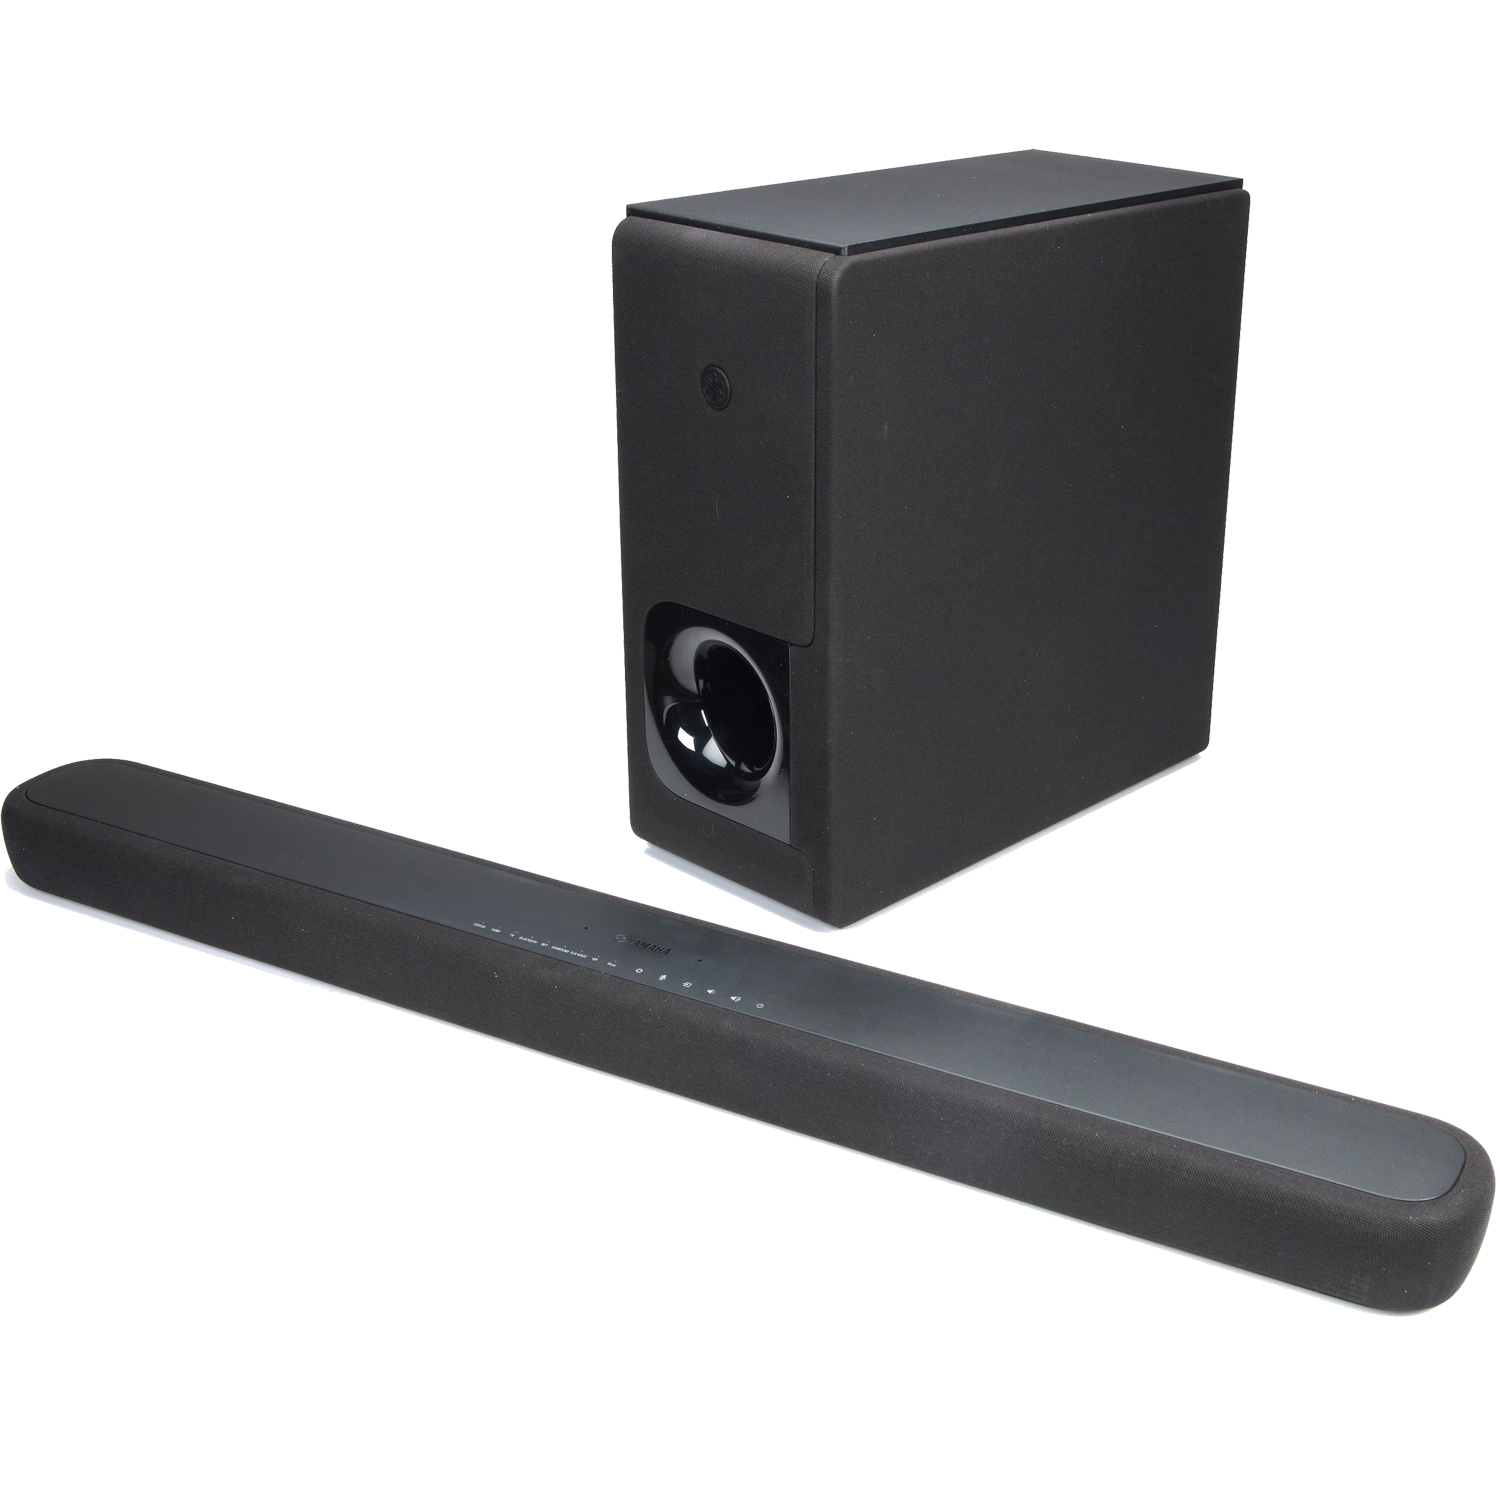 YAMAHA YAS-209 Sound Bar w/ Wireless Subwoofer and Alexa Built-in